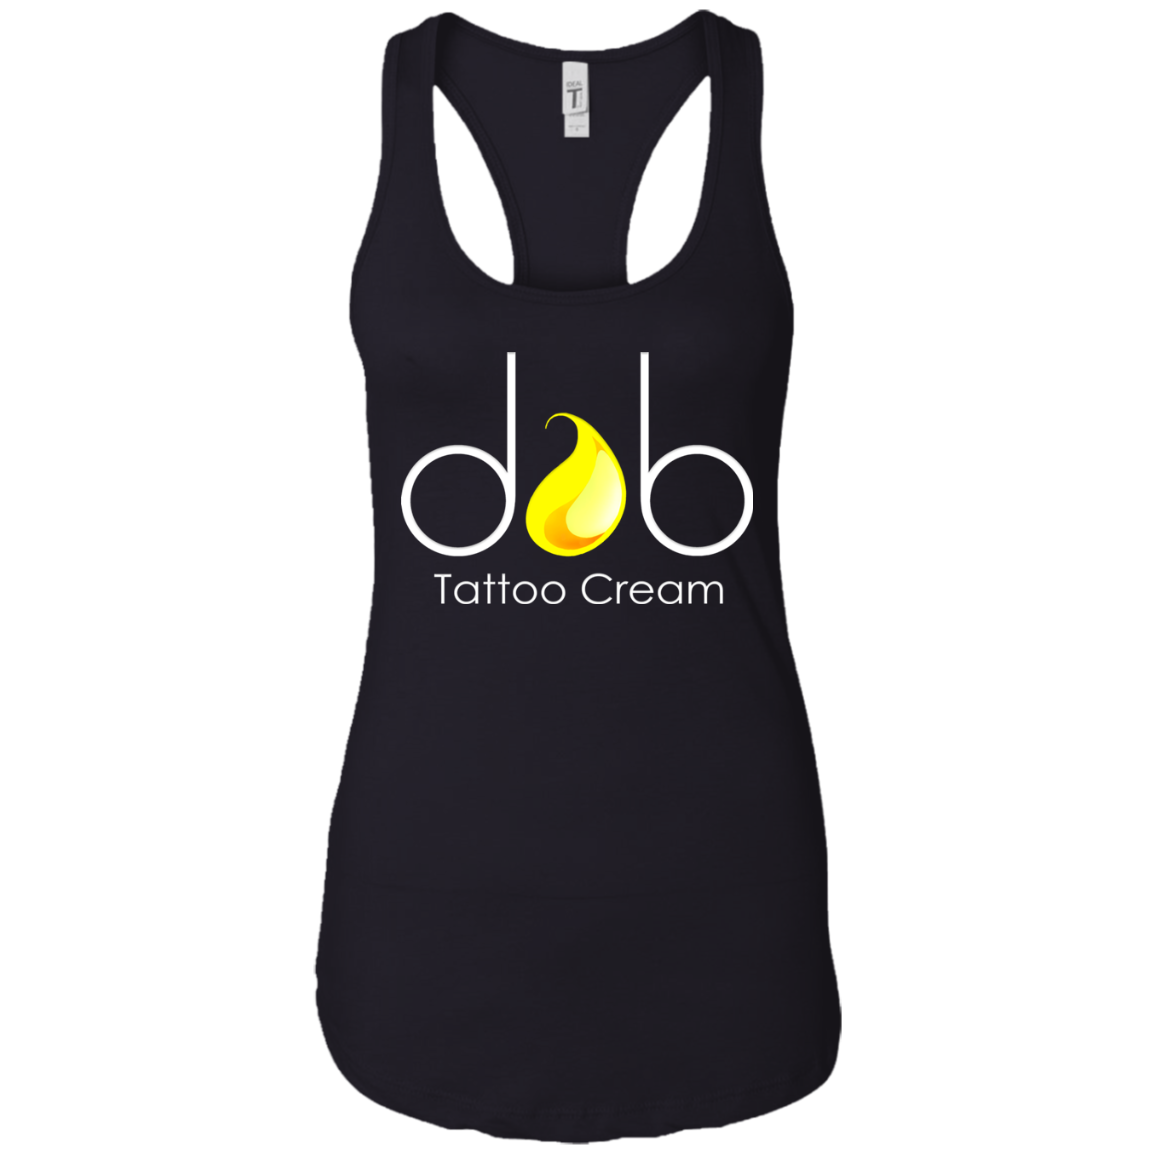 Dab Tattoo Cream Logo Ladies Racerback